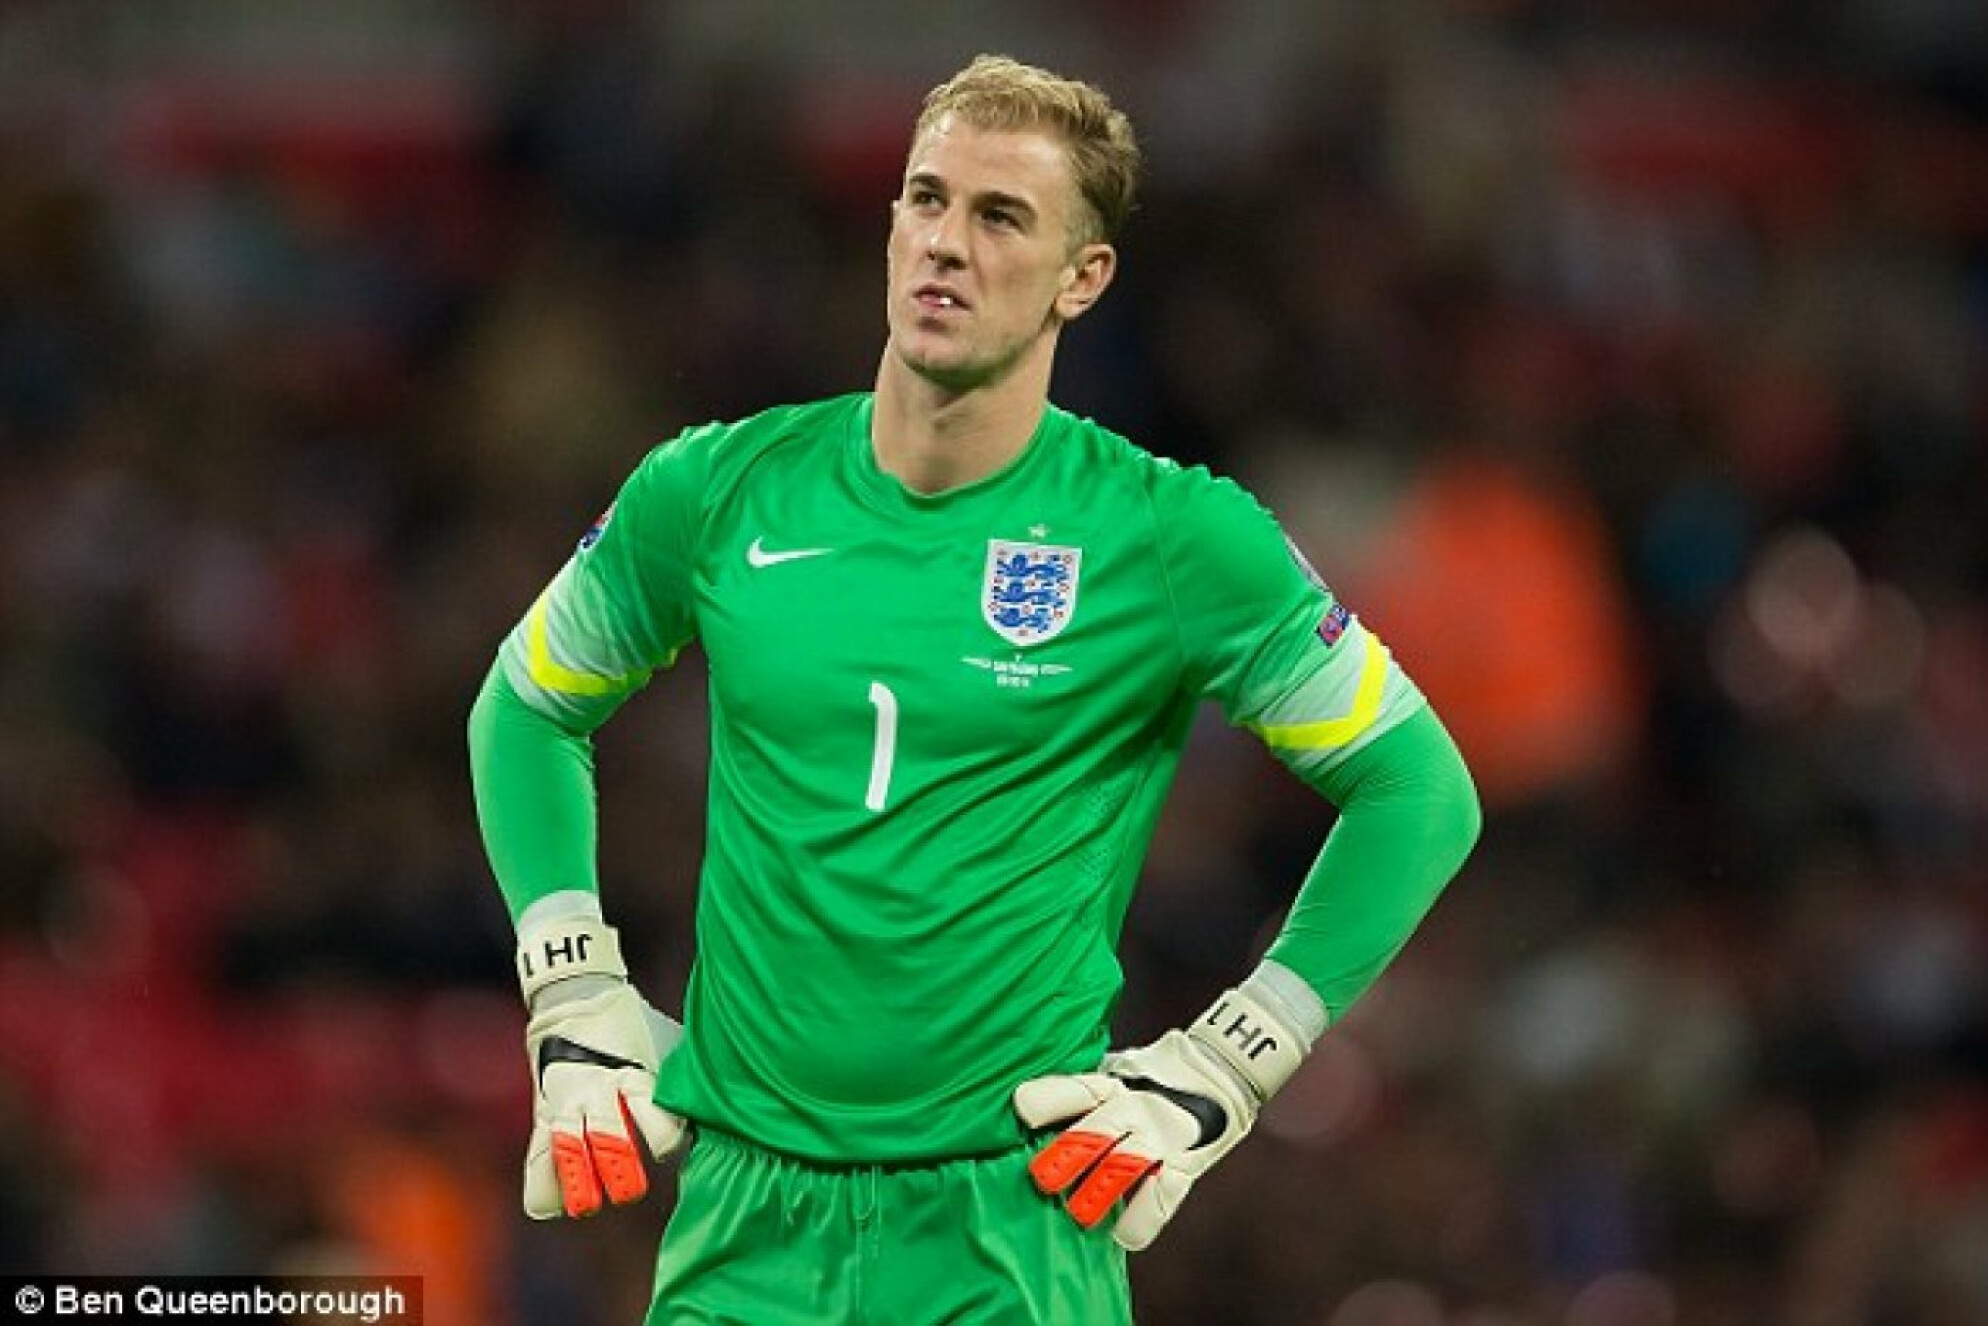 """No fear, go and smash it"" - Hart finally breaks his silence on World Cup snub"